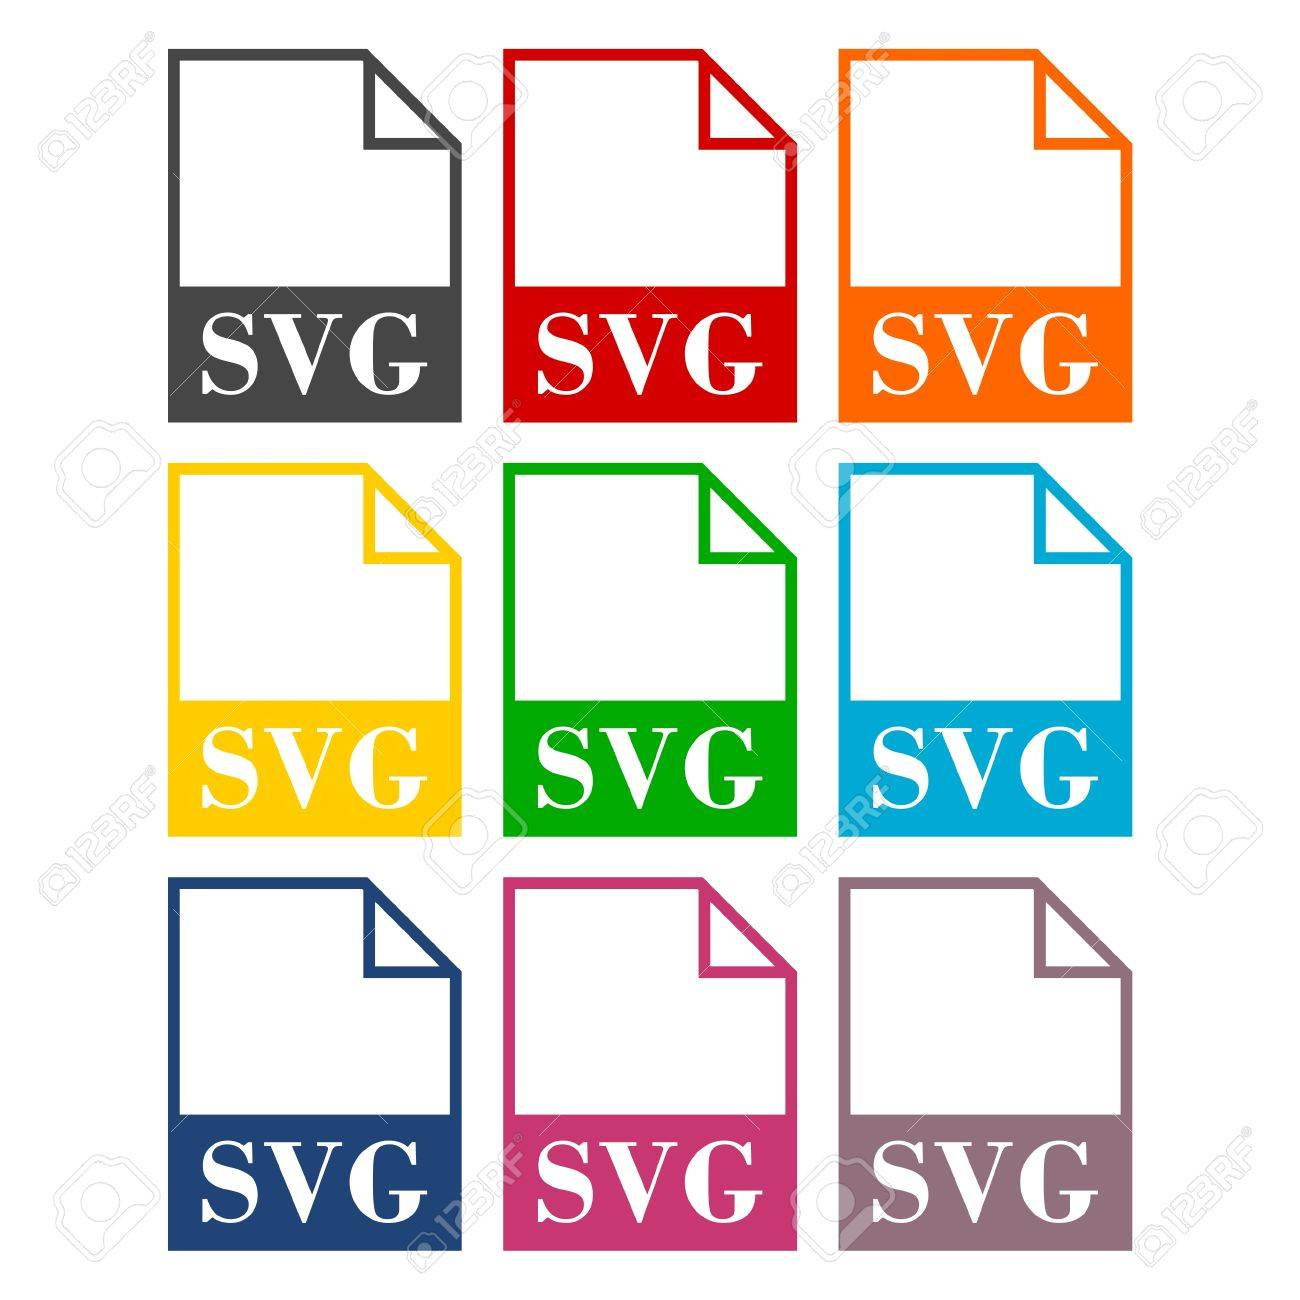 SVG file icons set Stock Vector - 56624959